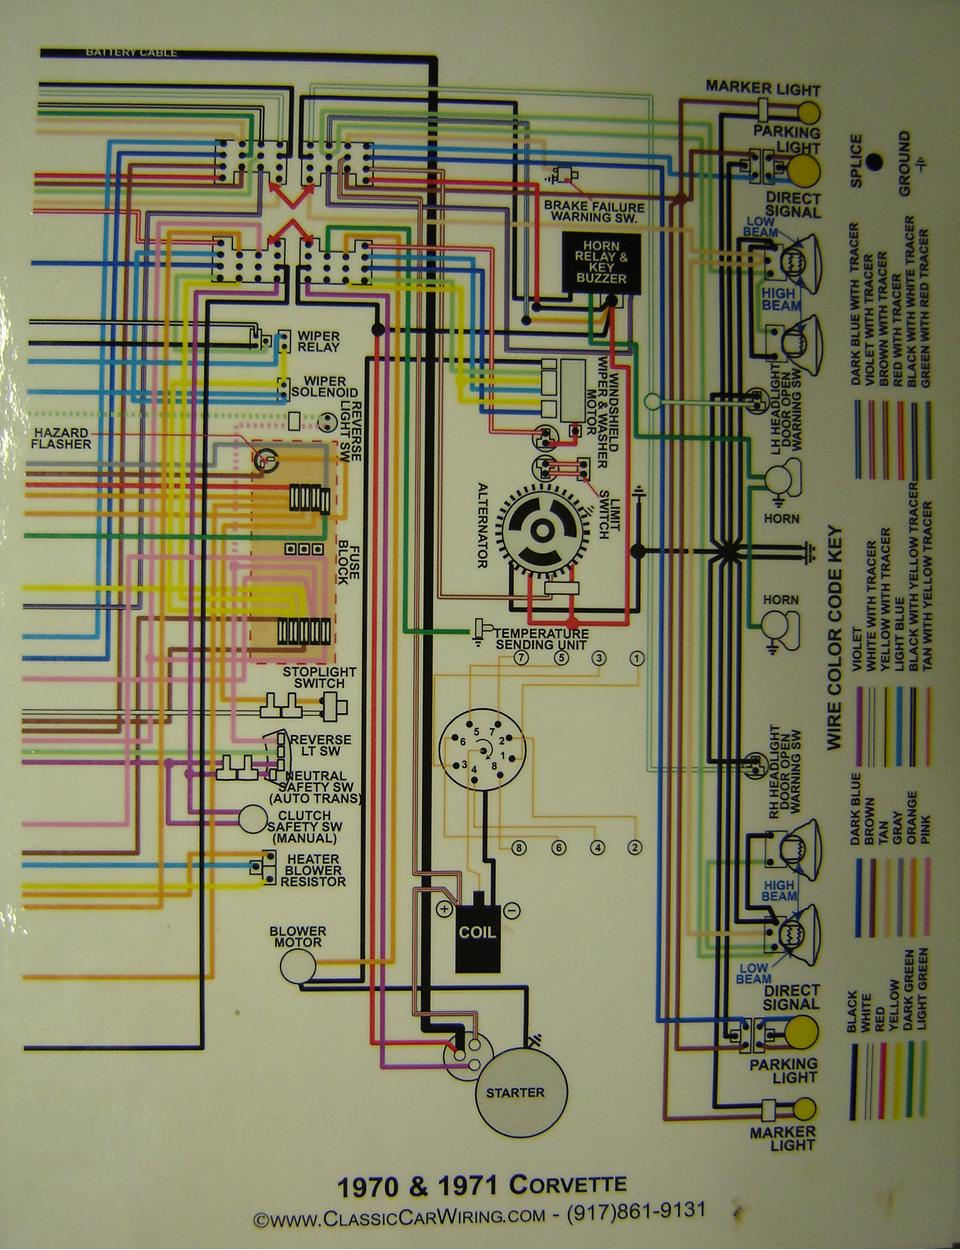 1970 71 corvette color wiring diagram B corvette wiring diagrams free 1980 corvette wiring diagram 1986 corvette wiring harness at webbmarketing.co